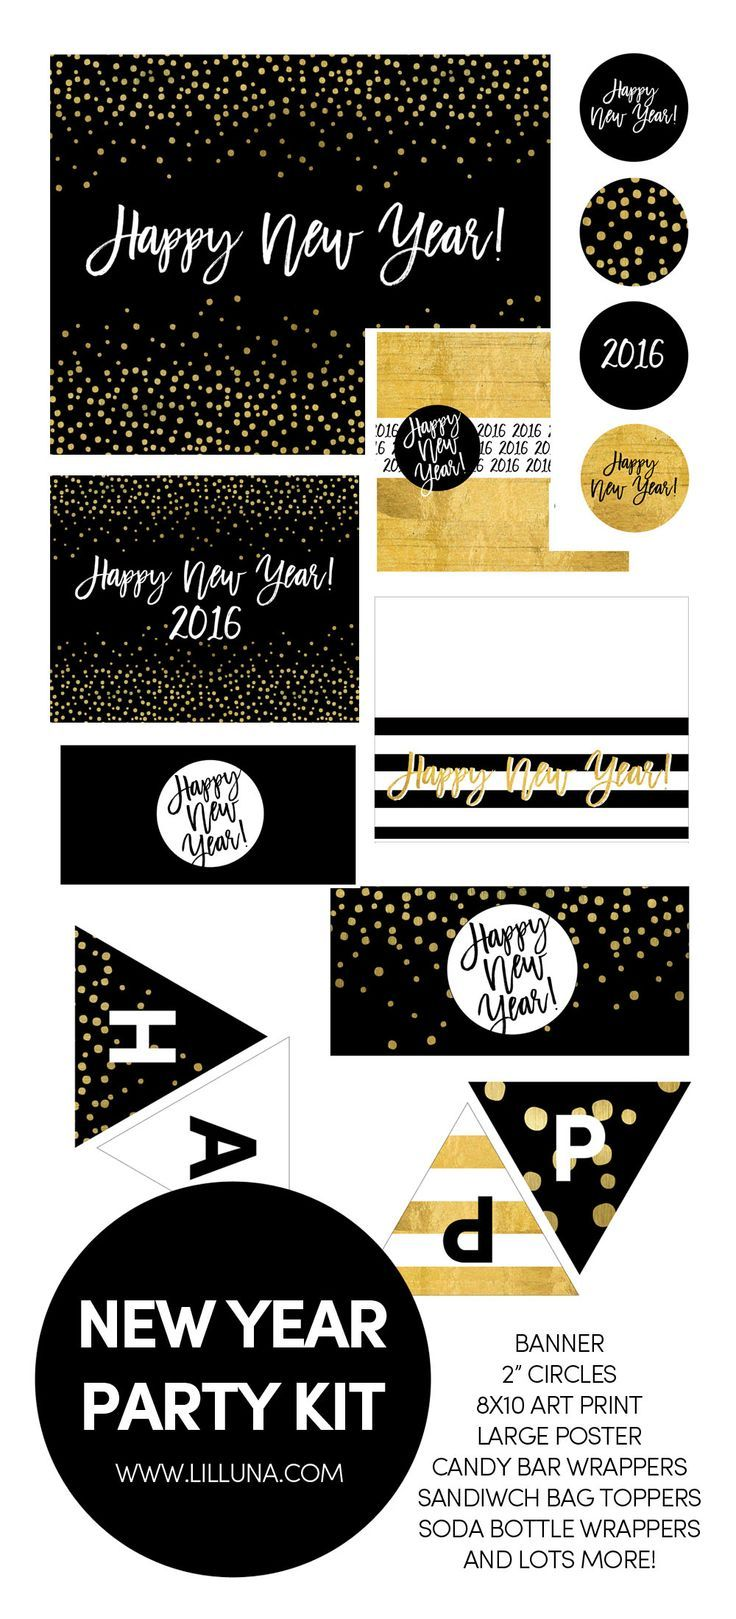 FREE New Year Party Kit Printables! All the fun prints you need for your New Year's party - a banner, toppers, poster, and more!